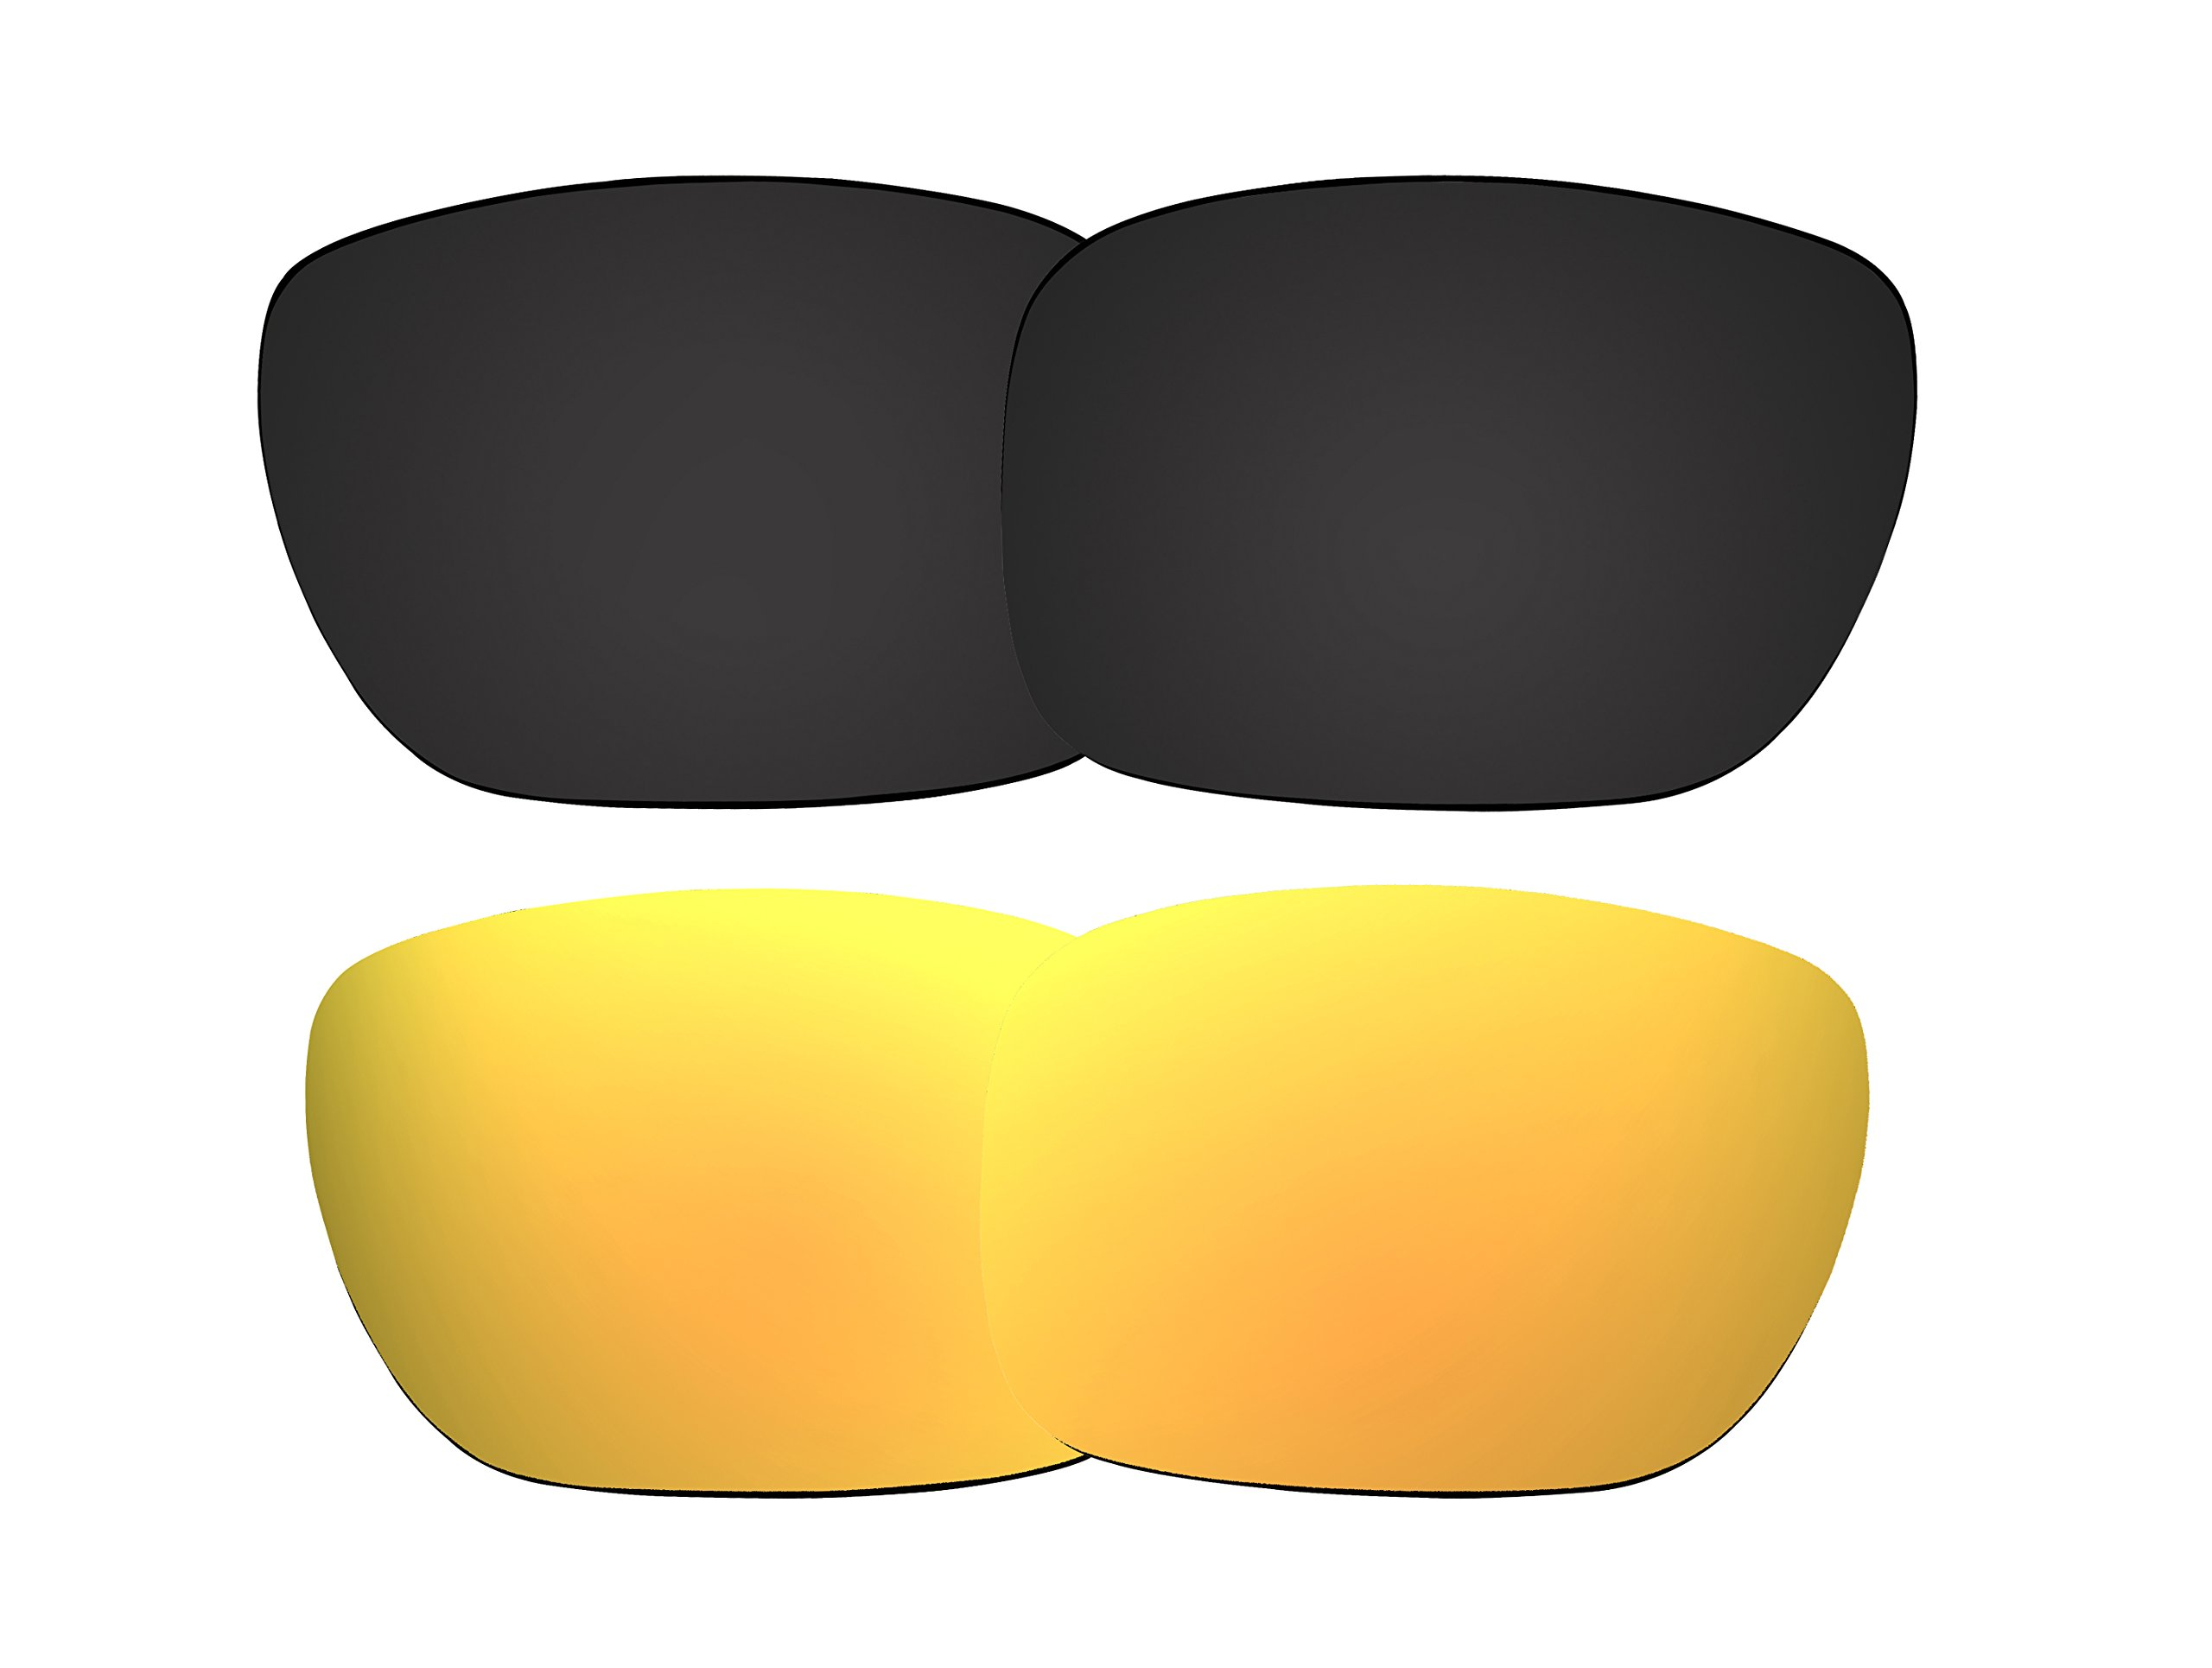 2 Pairs Polarized Replacement Sunglasses Lenses for Oakley Holbrook with UV Protection(Black and Golden Yellow Mirror) by C.D